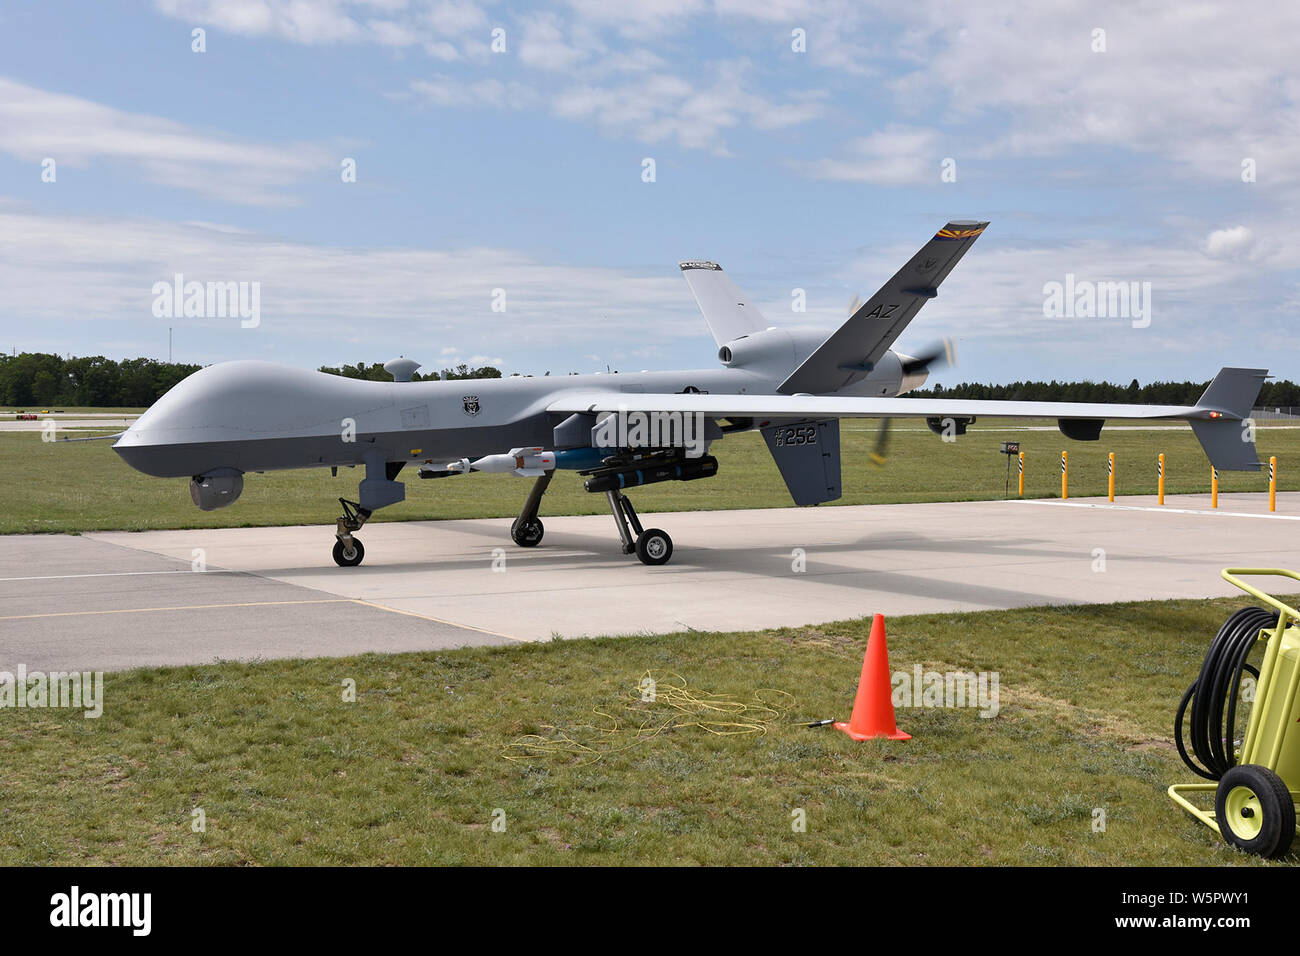 An MQ-9 Reaper assigned to the 214th Aircraft Maintenace Squadron performs preflight operations before taking off during Exercise Northern Strike at the Alpena Combat Readiness Training Center, Mich., July 22, 2019. Northern Strike 19 is a National Guard Bureau-sponsored exercise uniting approximately 5,700 service members and more than 20 states and seven coalition countries at the Camp Grayling Joint Maneuver Training Center and the Alpena CRTC, both located in Northern Michigan. (U.S. Air National Guard photo by Senior Airman Ryan Zeski) Stock Photo